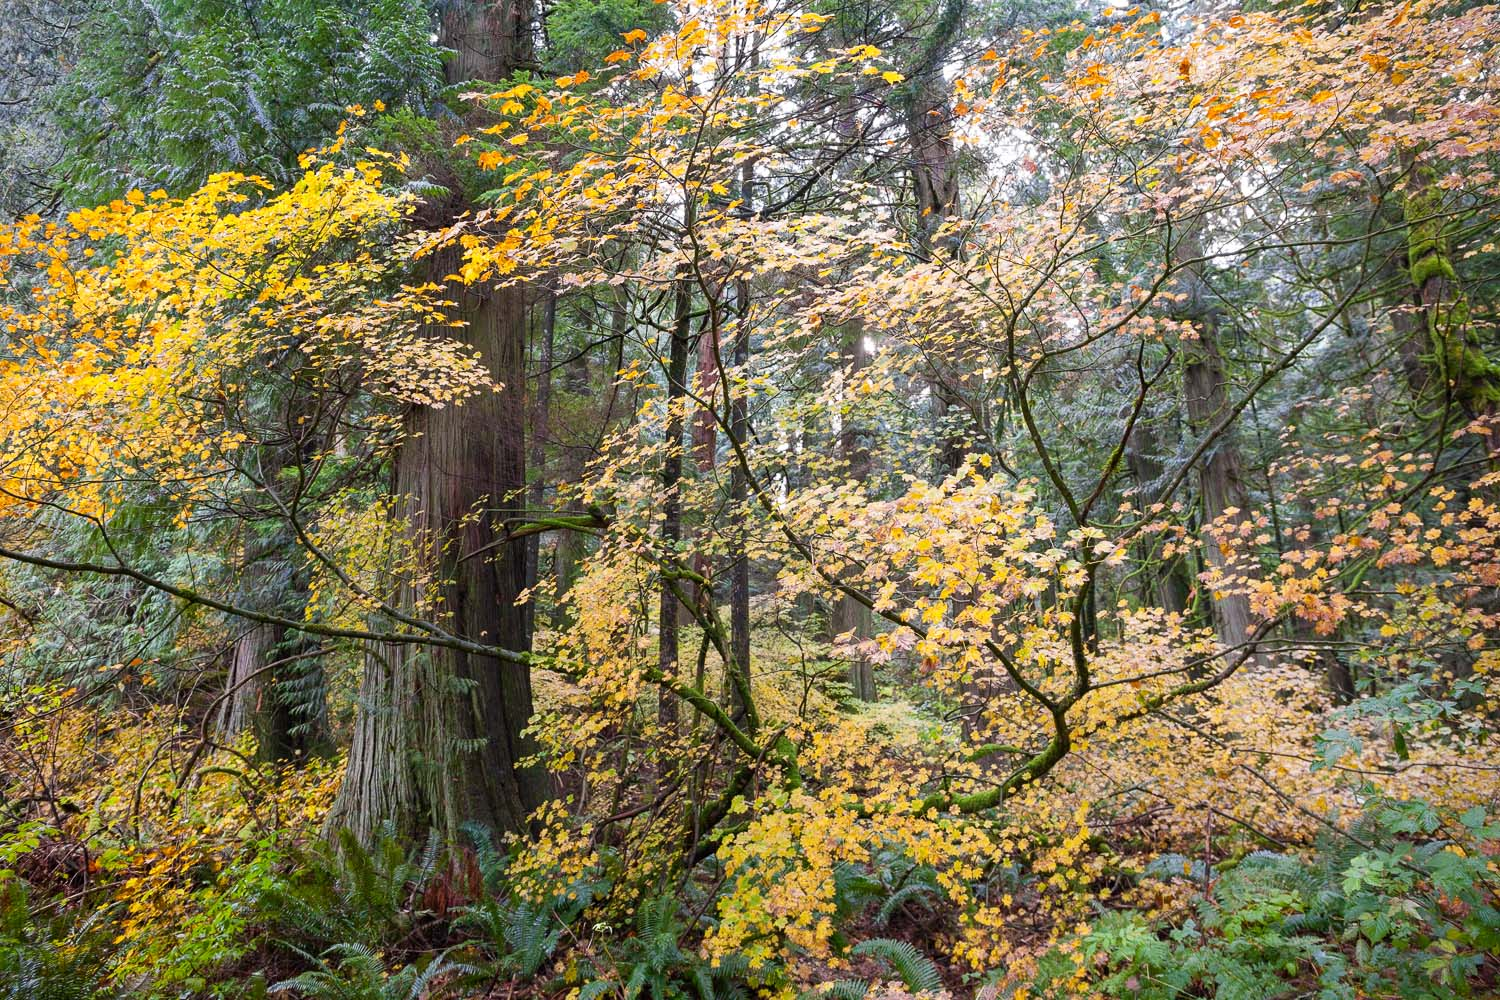 vine-maple-redcedar-echo-lake-forest.jpg